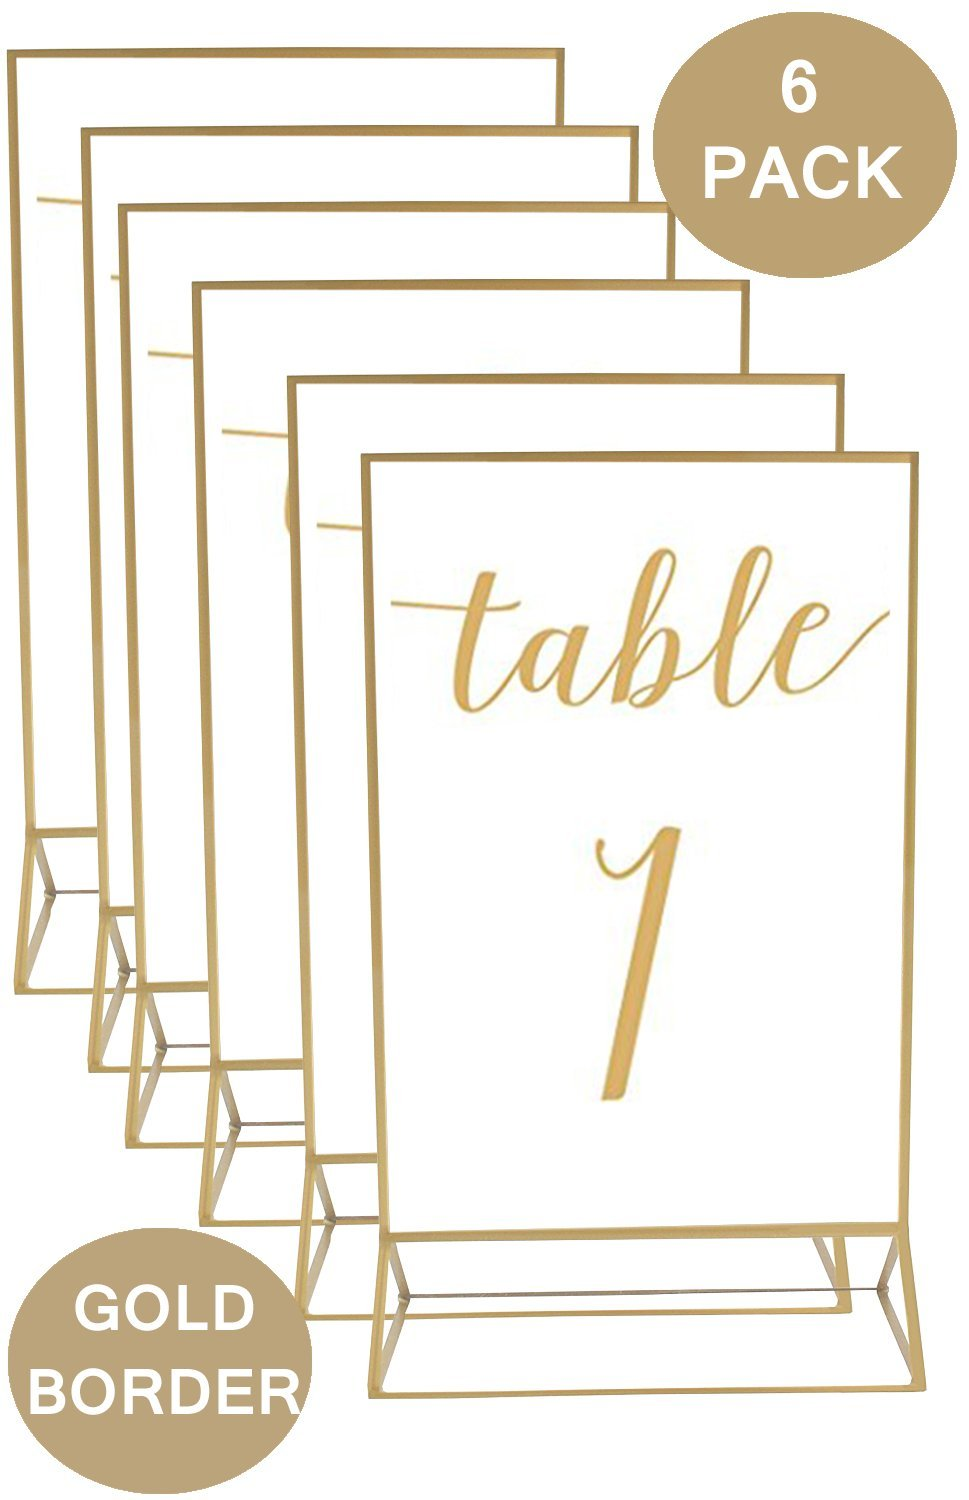 Gold-Accented 5x7 Inch Acrylic Photo Double-Sided Frames | Perfect for Weddings, Offices, Restaurants, Businesses, Anniversaries, Graduations, Special Events & Trips | More Durable Than Glass | 6 Pack